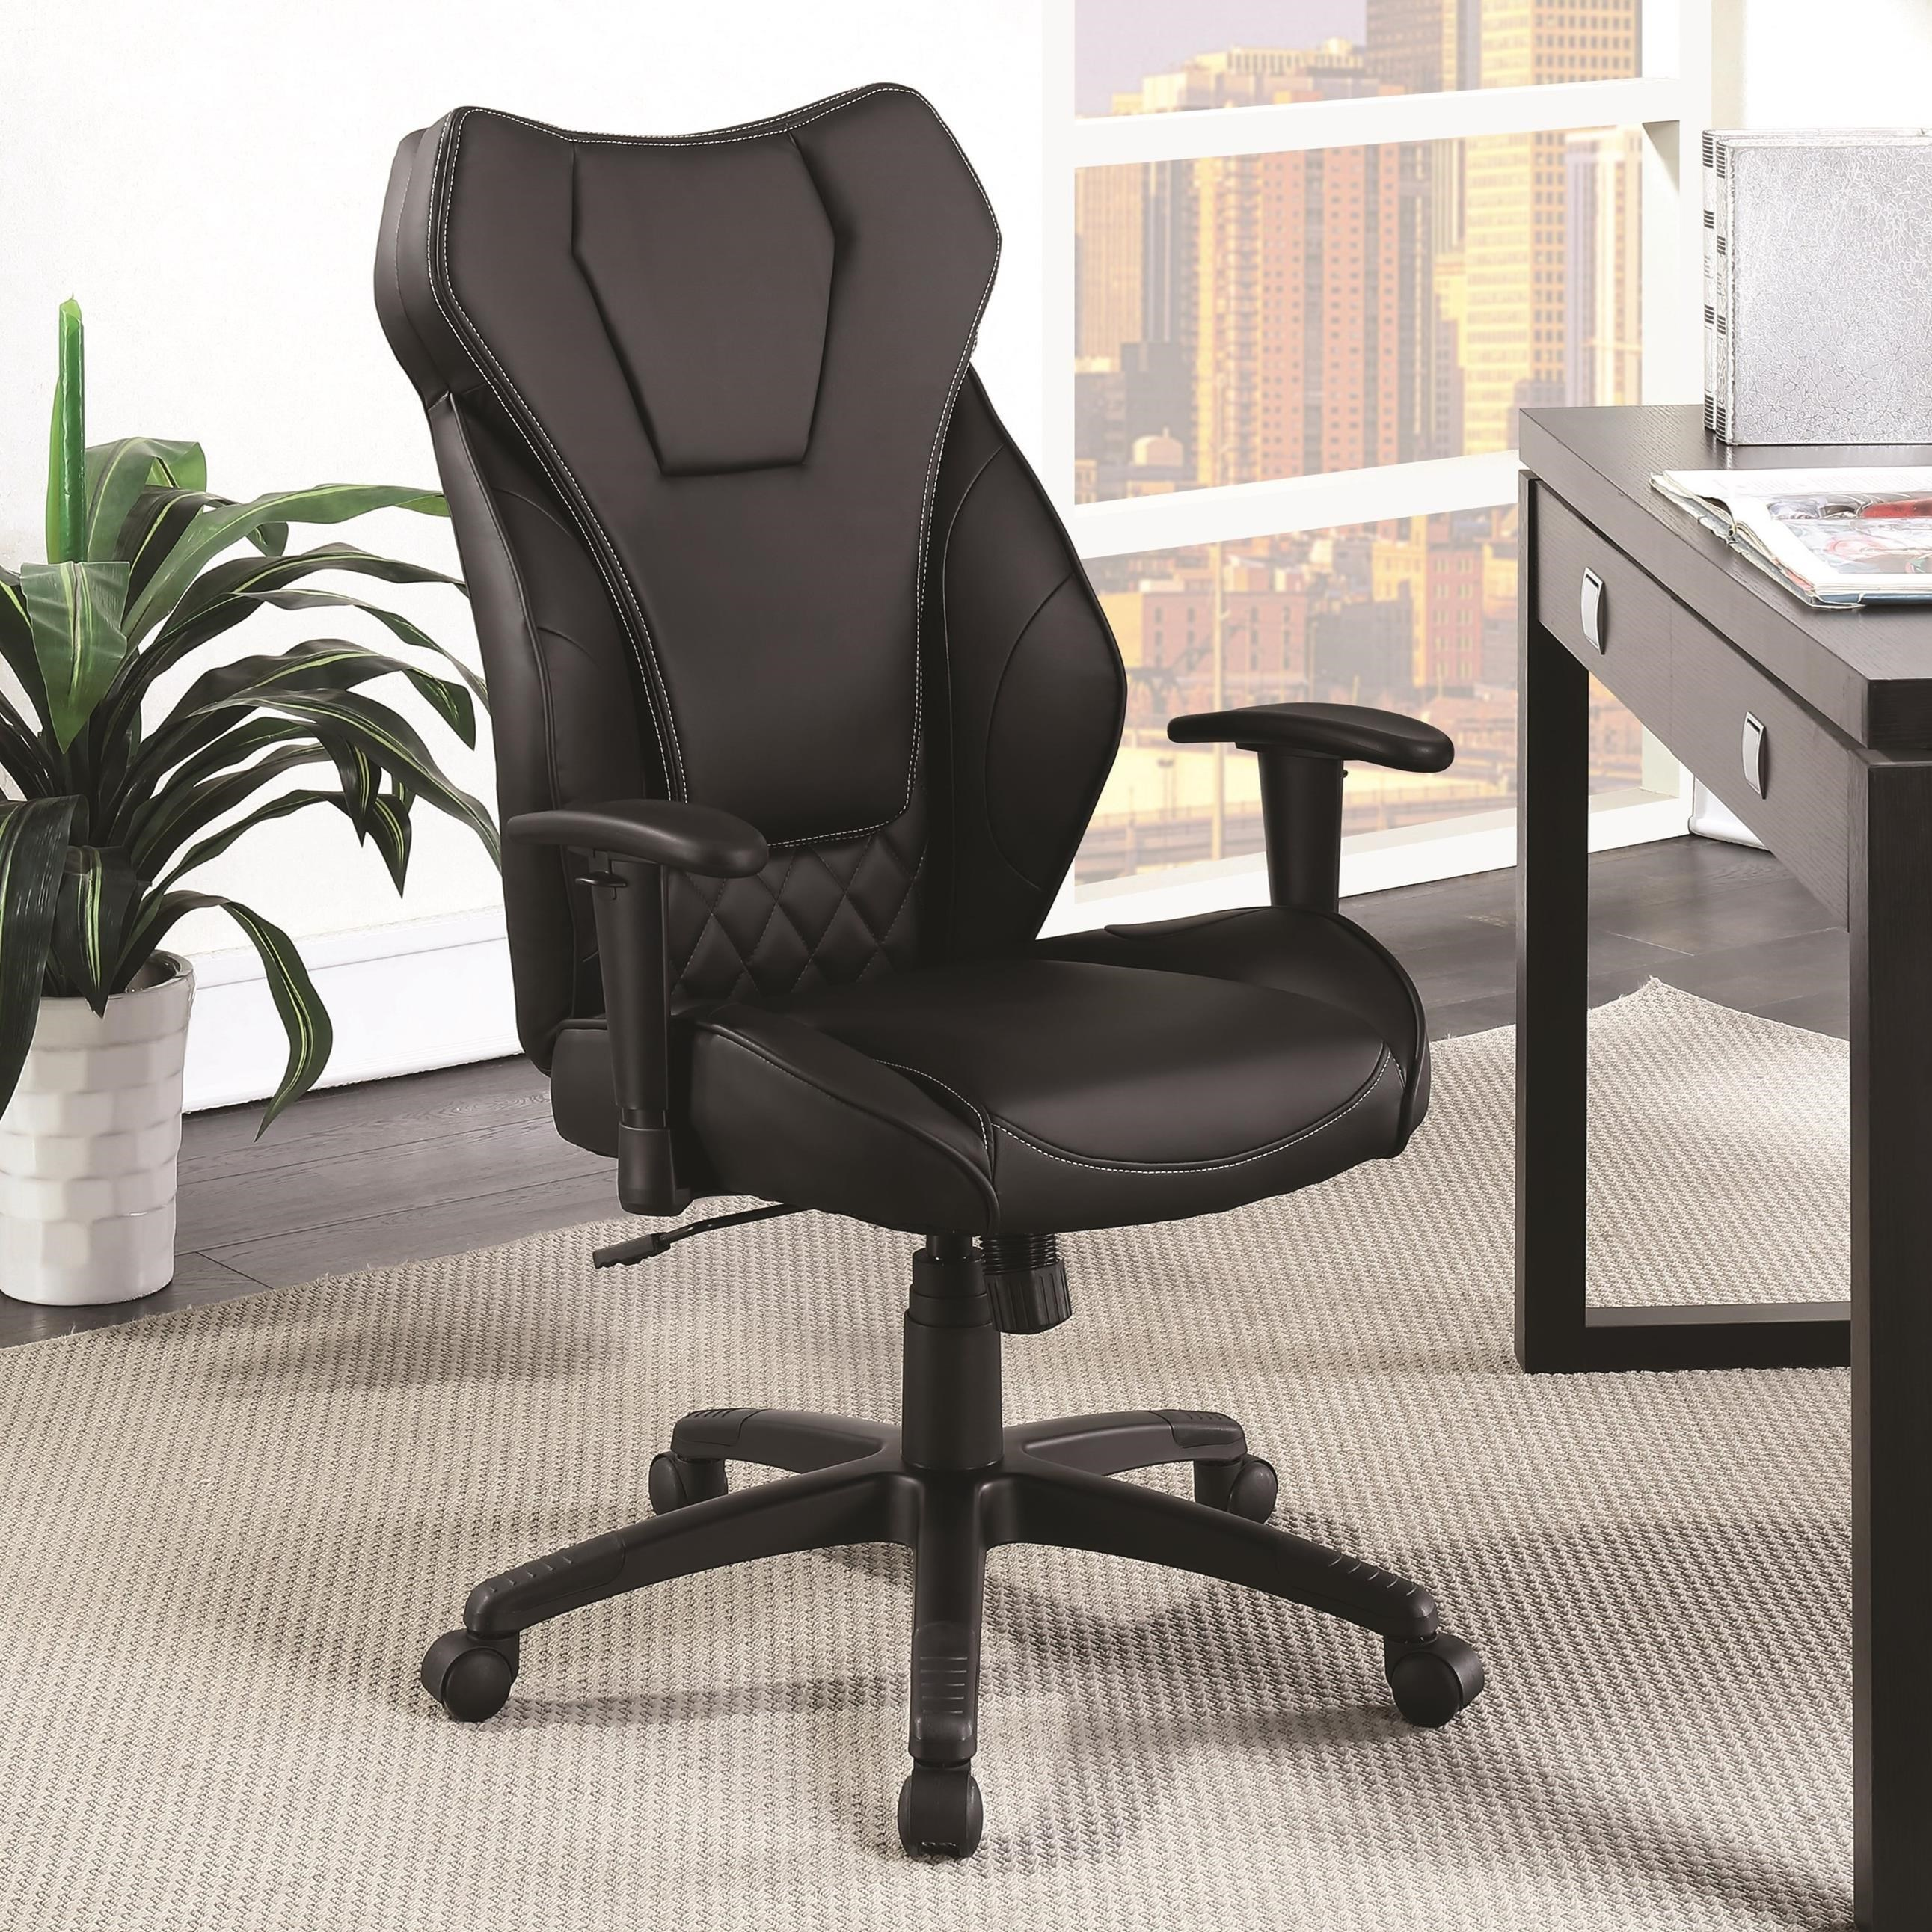 Ordinaire Coaster Office Chairs Leatherette High Back Office Chair